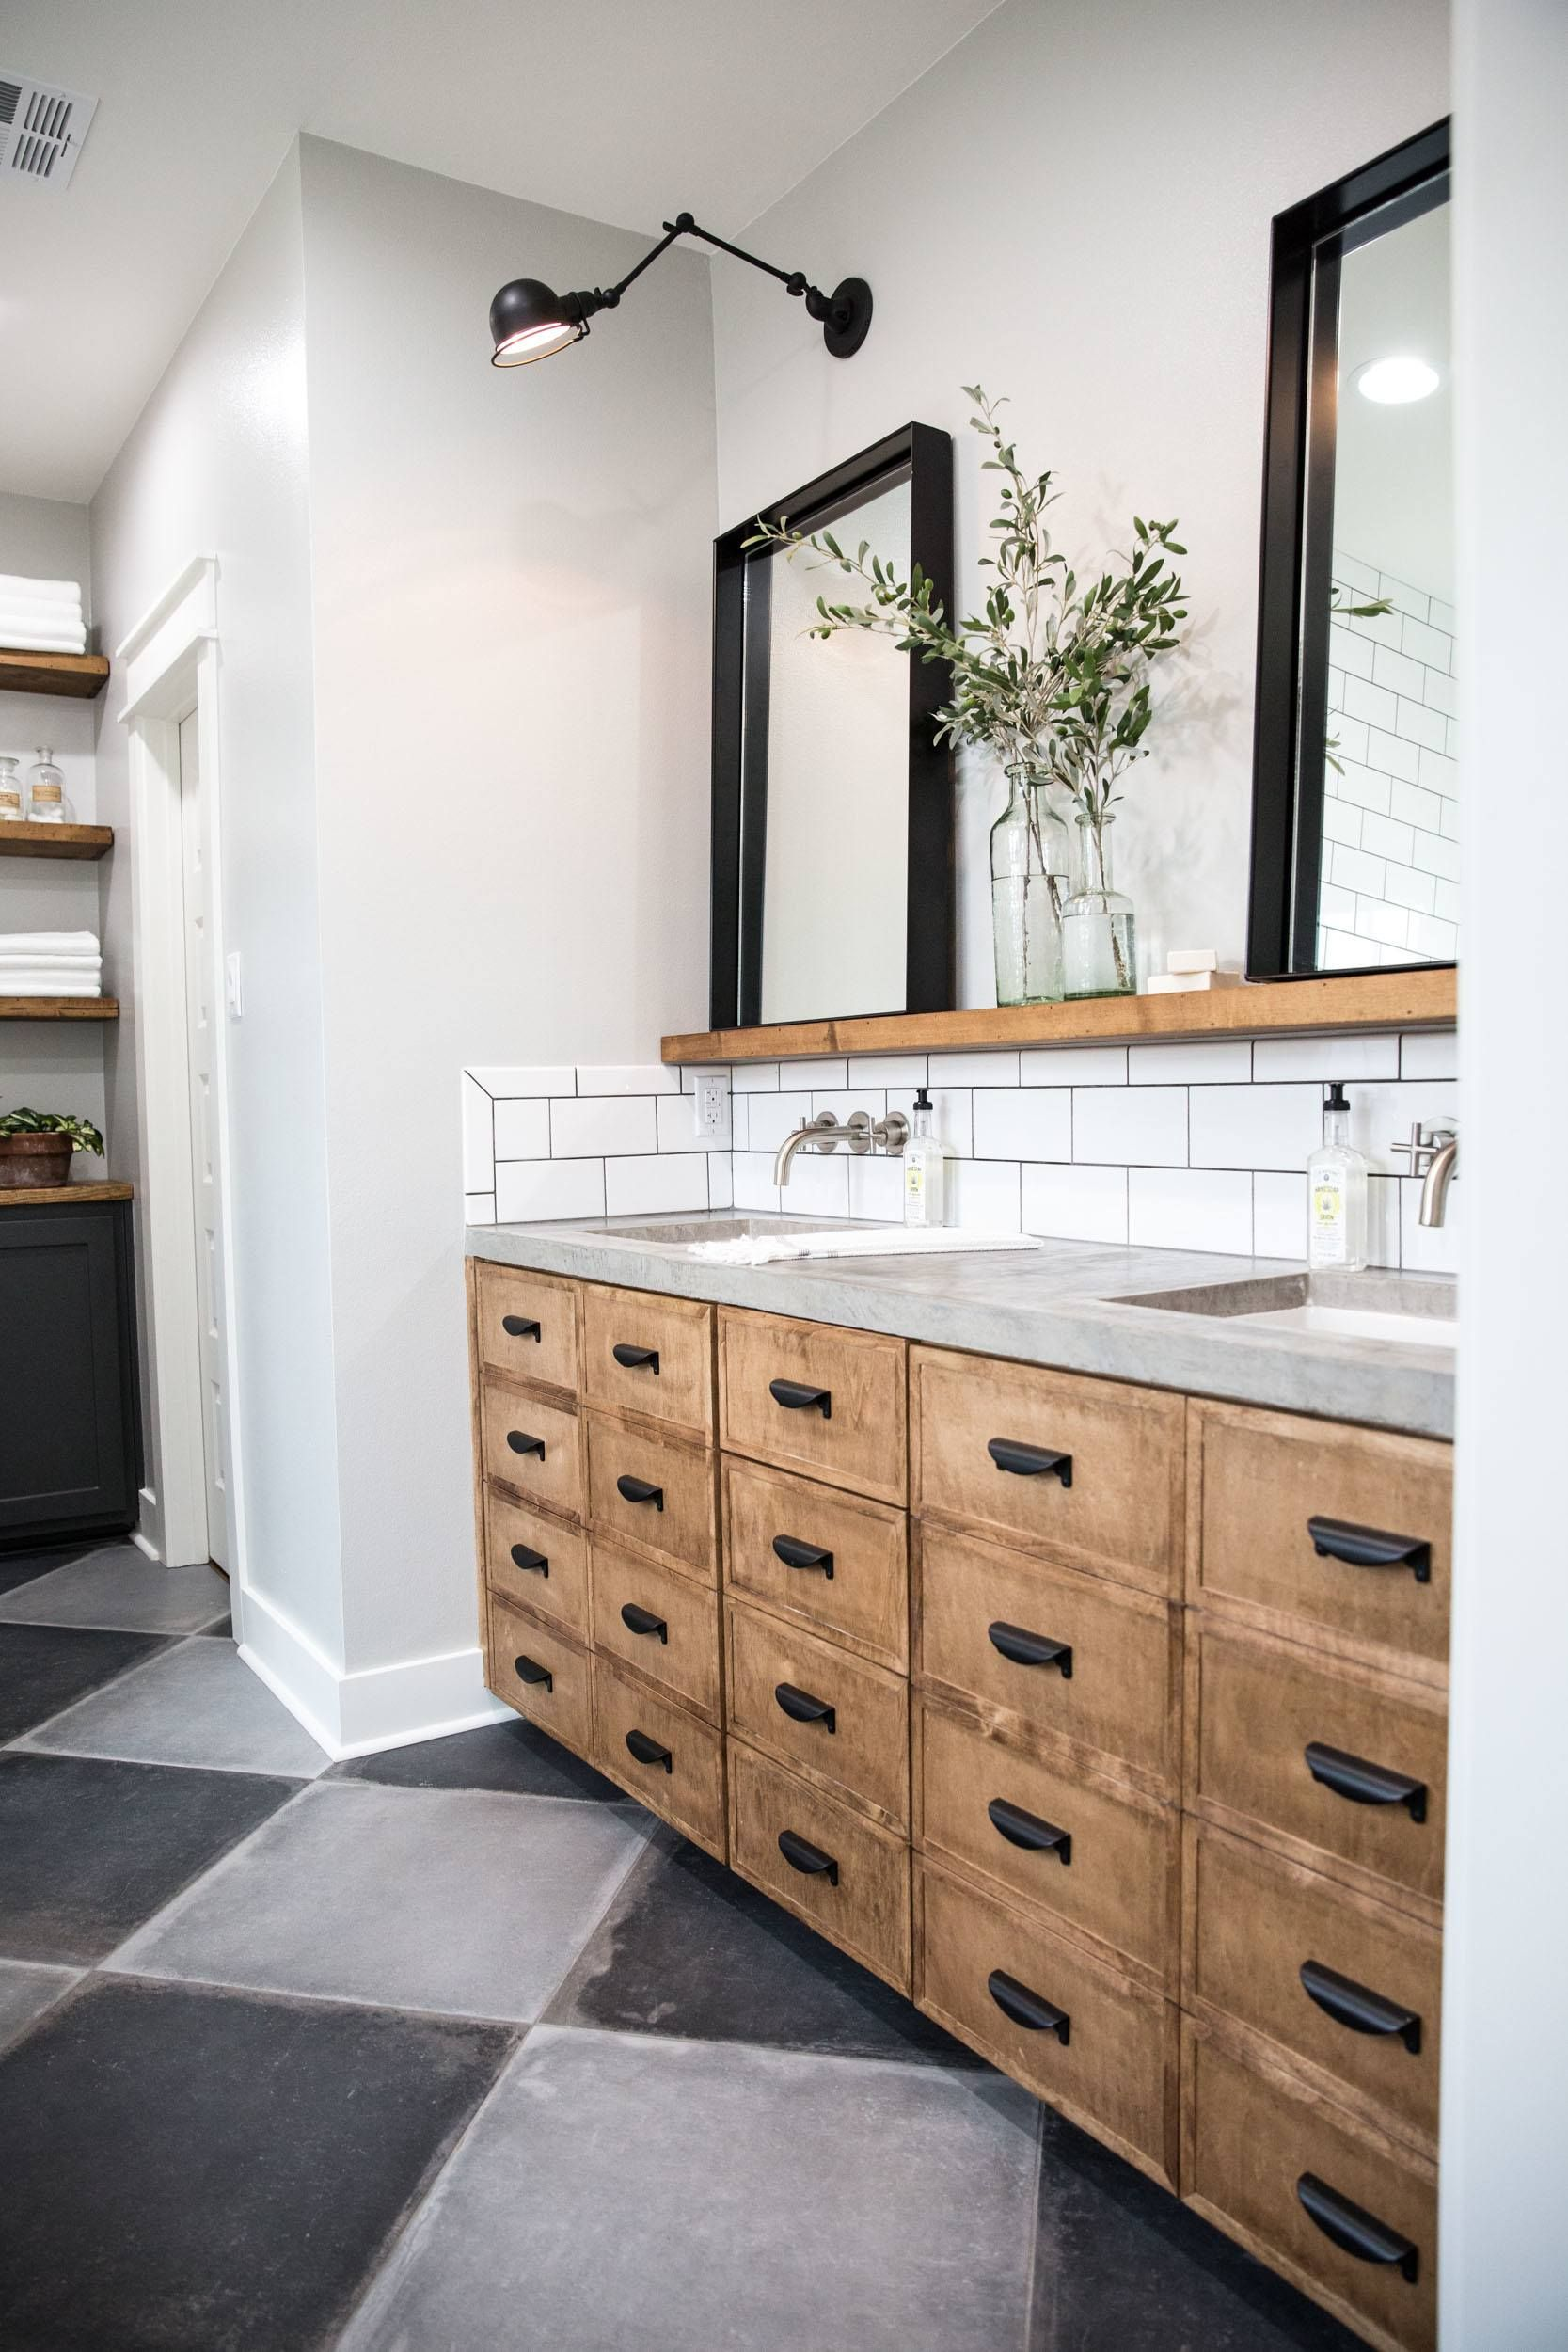 Joanna Gaines Bathroom Decorating Ideas episode 16 - the little shack on the prairie | joanna gaines